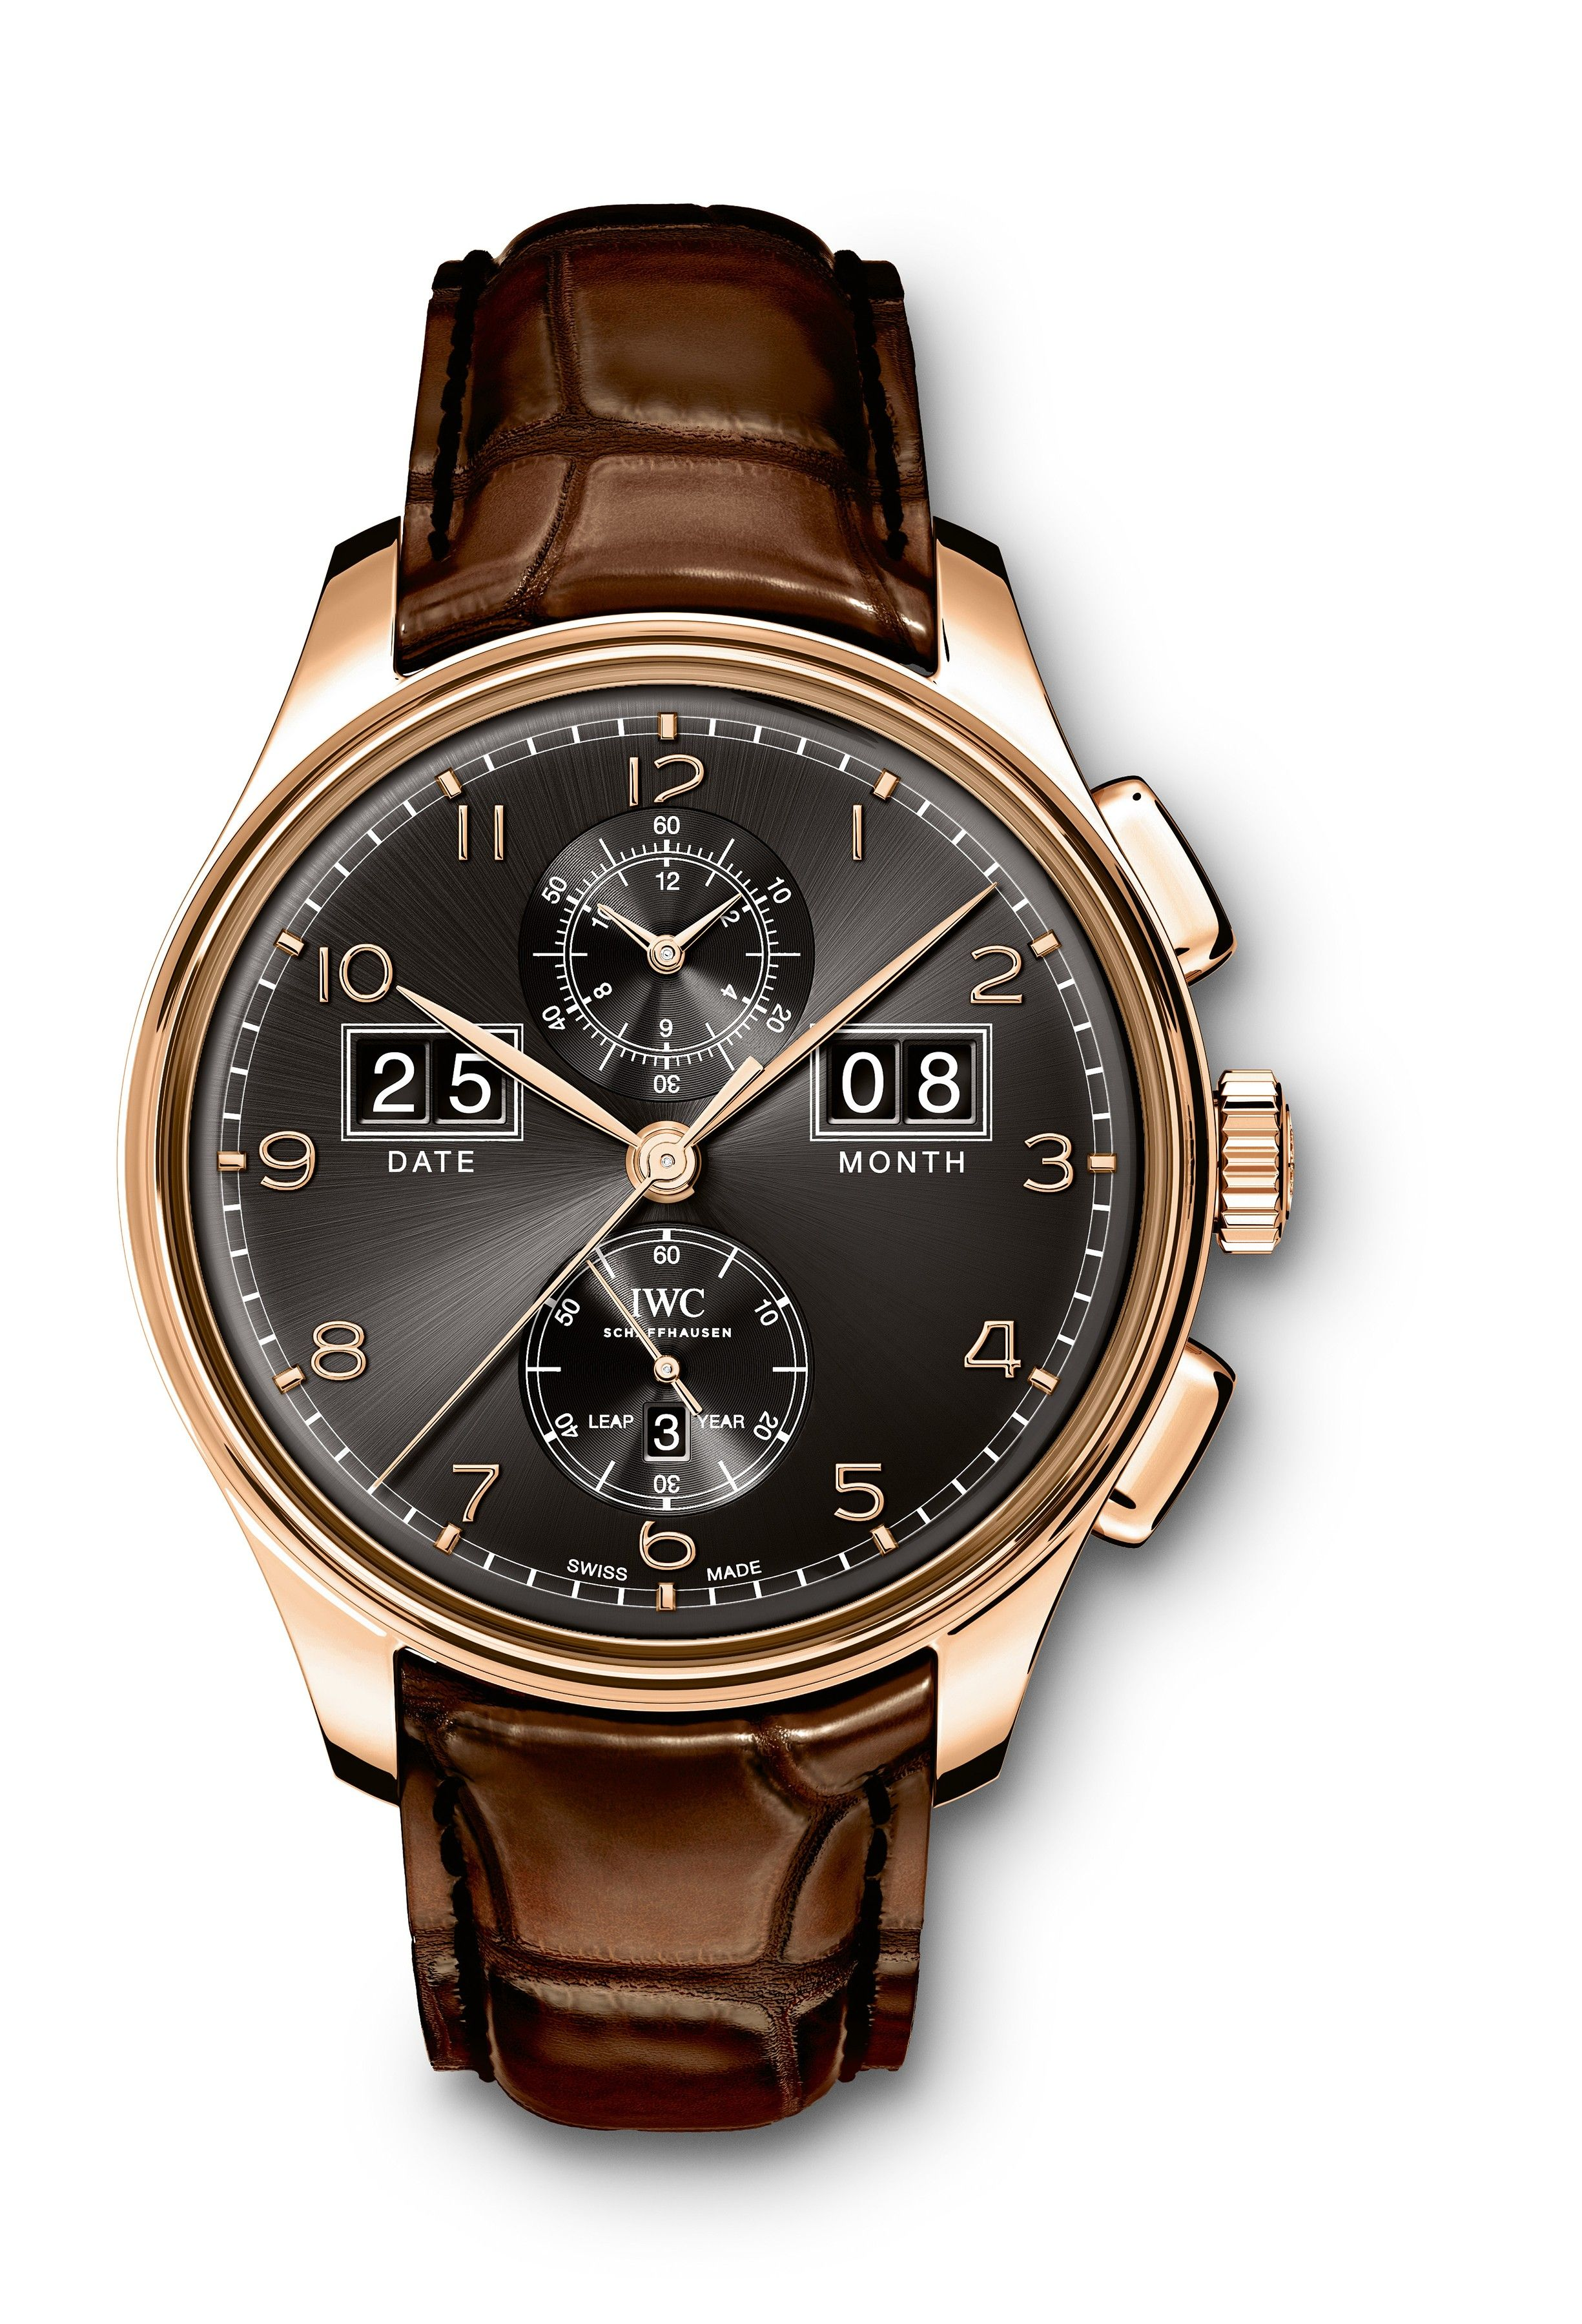 "#IWC Portugieser Perpetual Calendar Digital Date-Month Edition ""75th Anniversary"" Rose Gold #Watch"